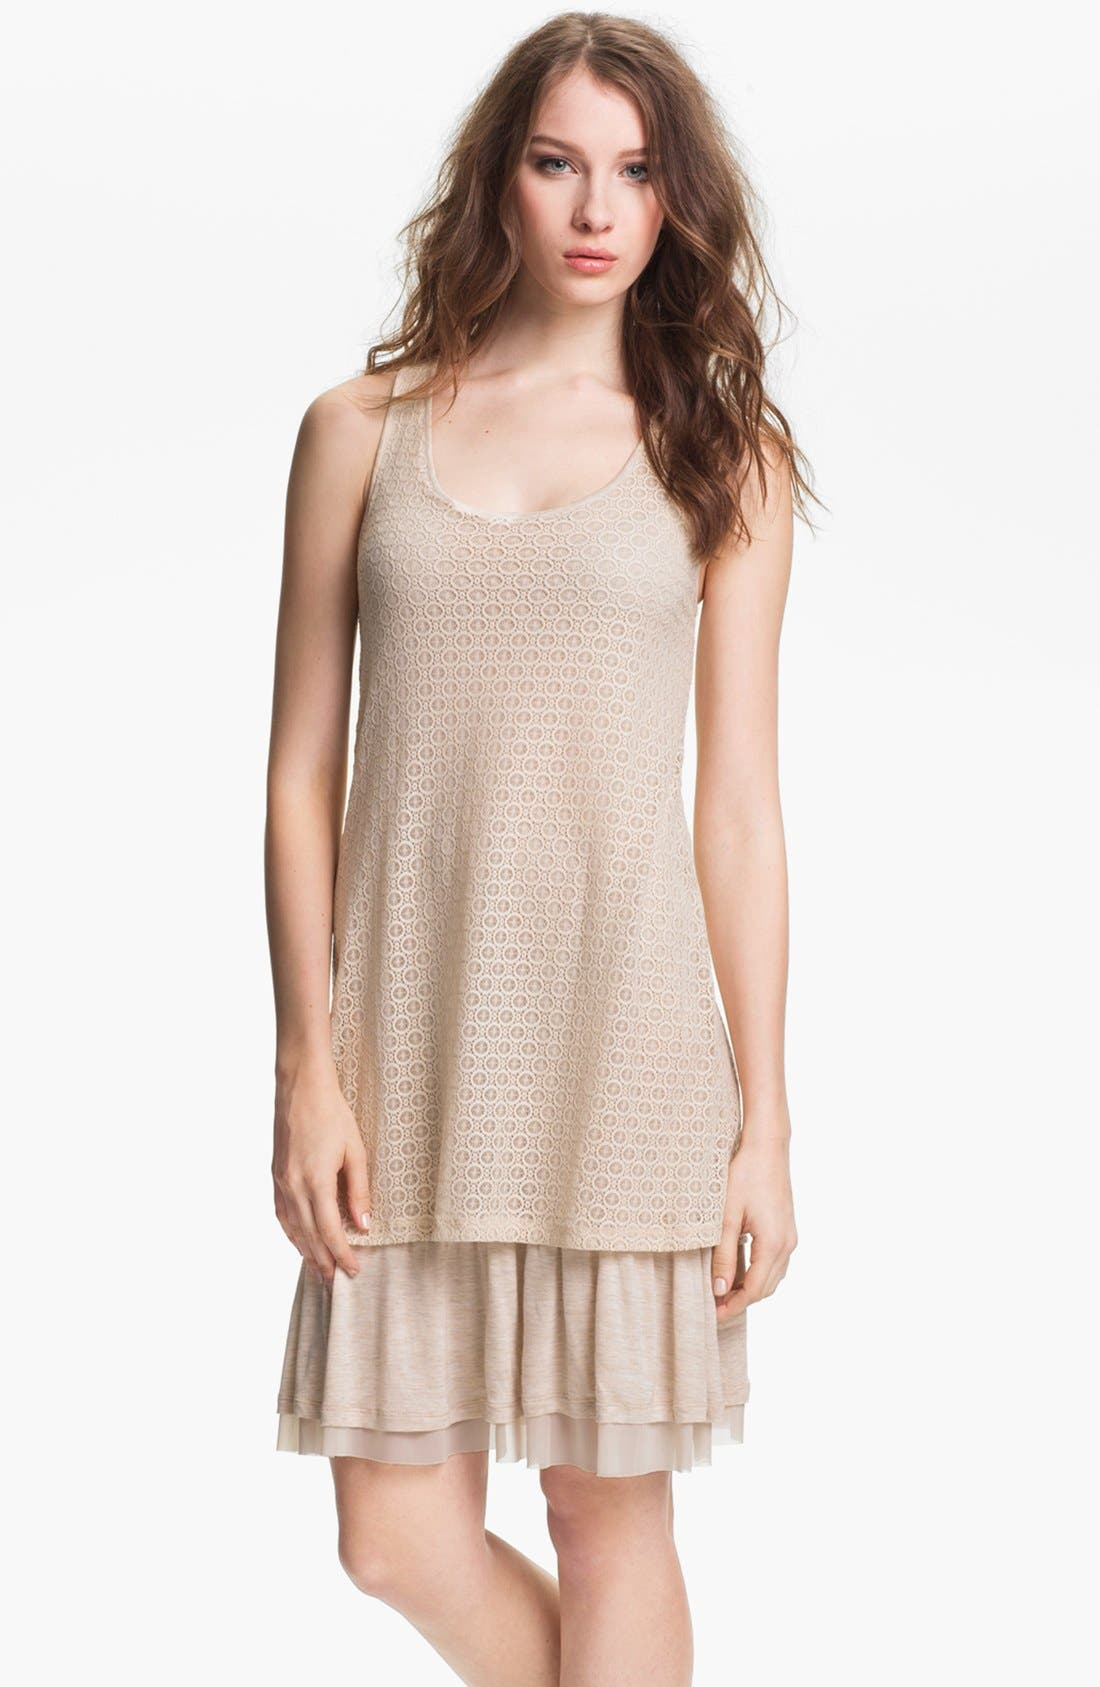 Alternate Image 1 Selected - Kensie Lace Overlay Dress (Online Exclusive)